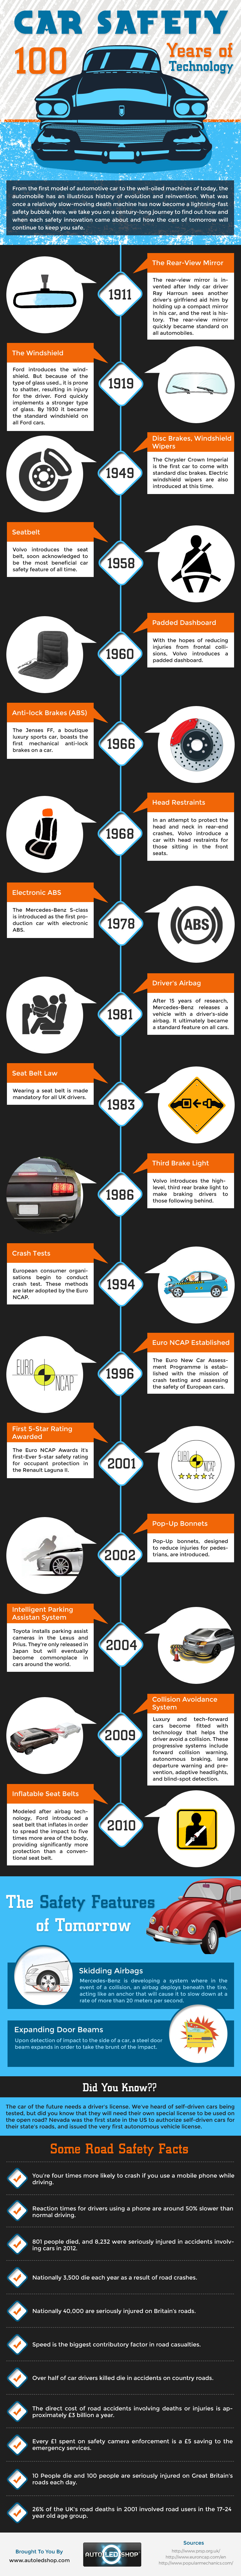 Car Safety 100 Years of Technology